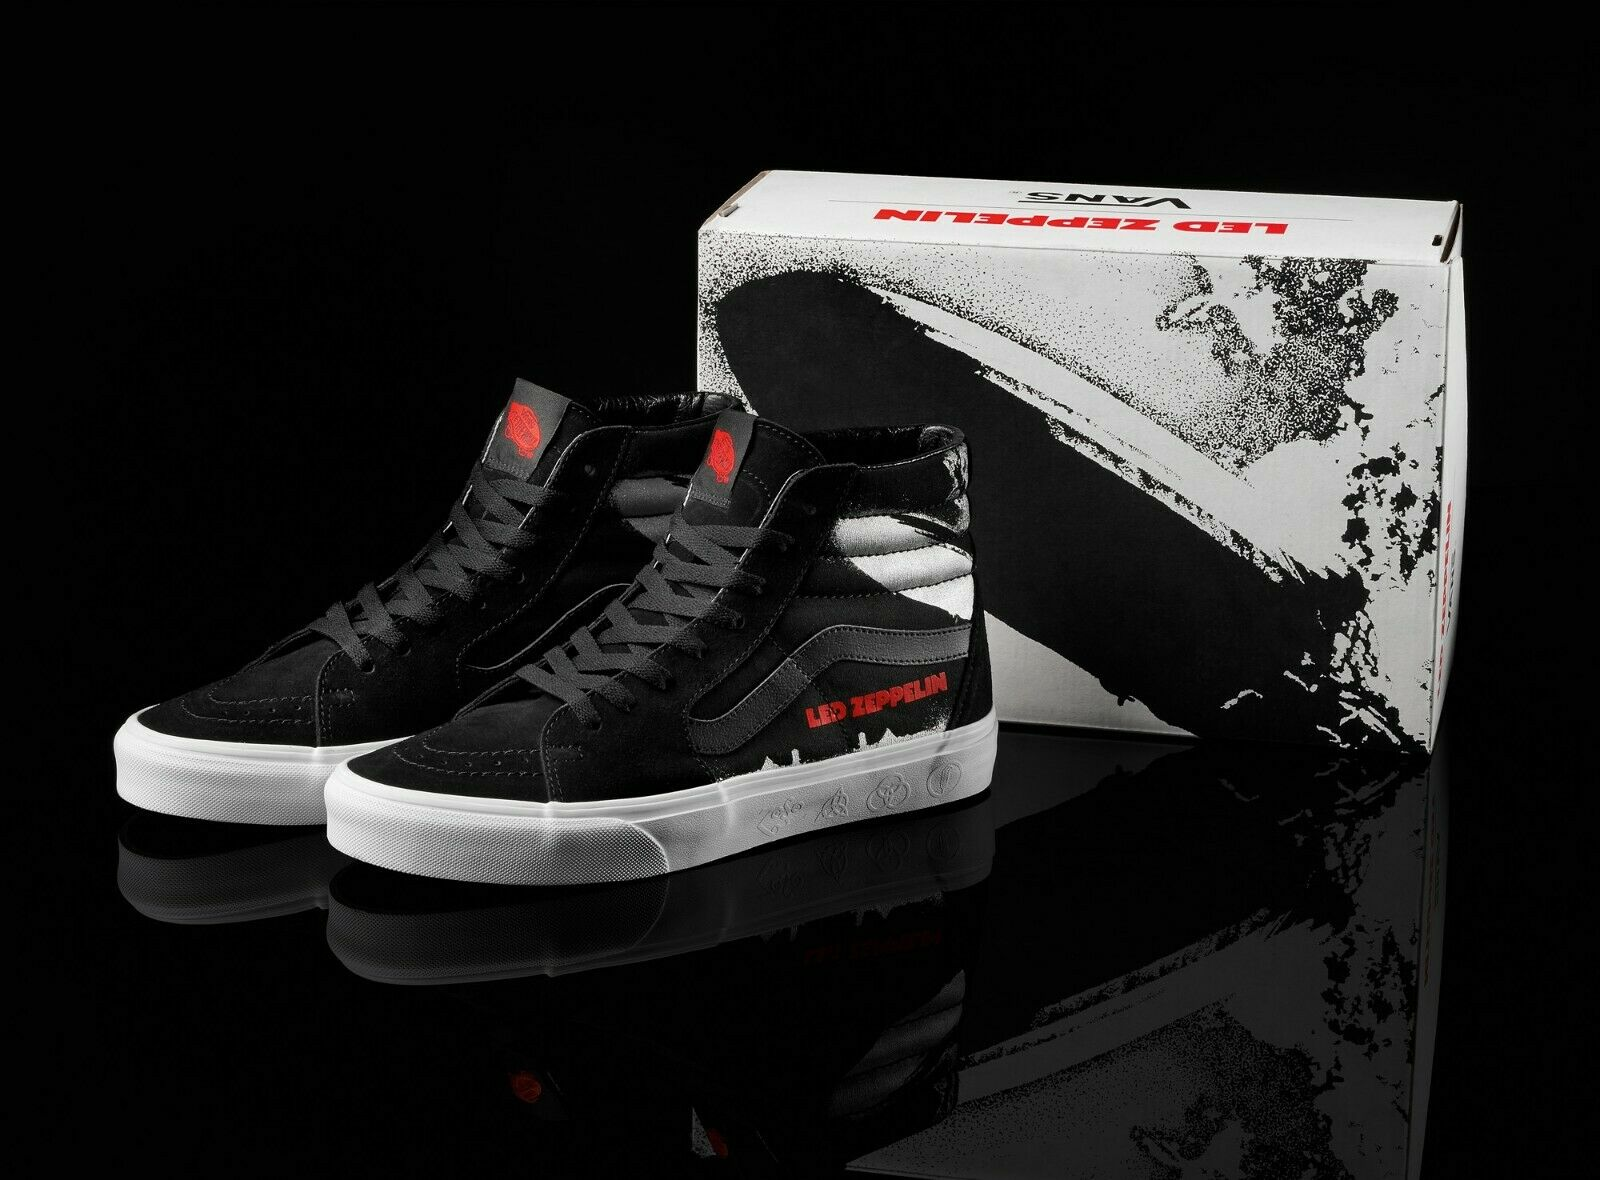 VANS Sk8 Hi (LED ZEPPELIN) BlackTrue White | Justees Bottega